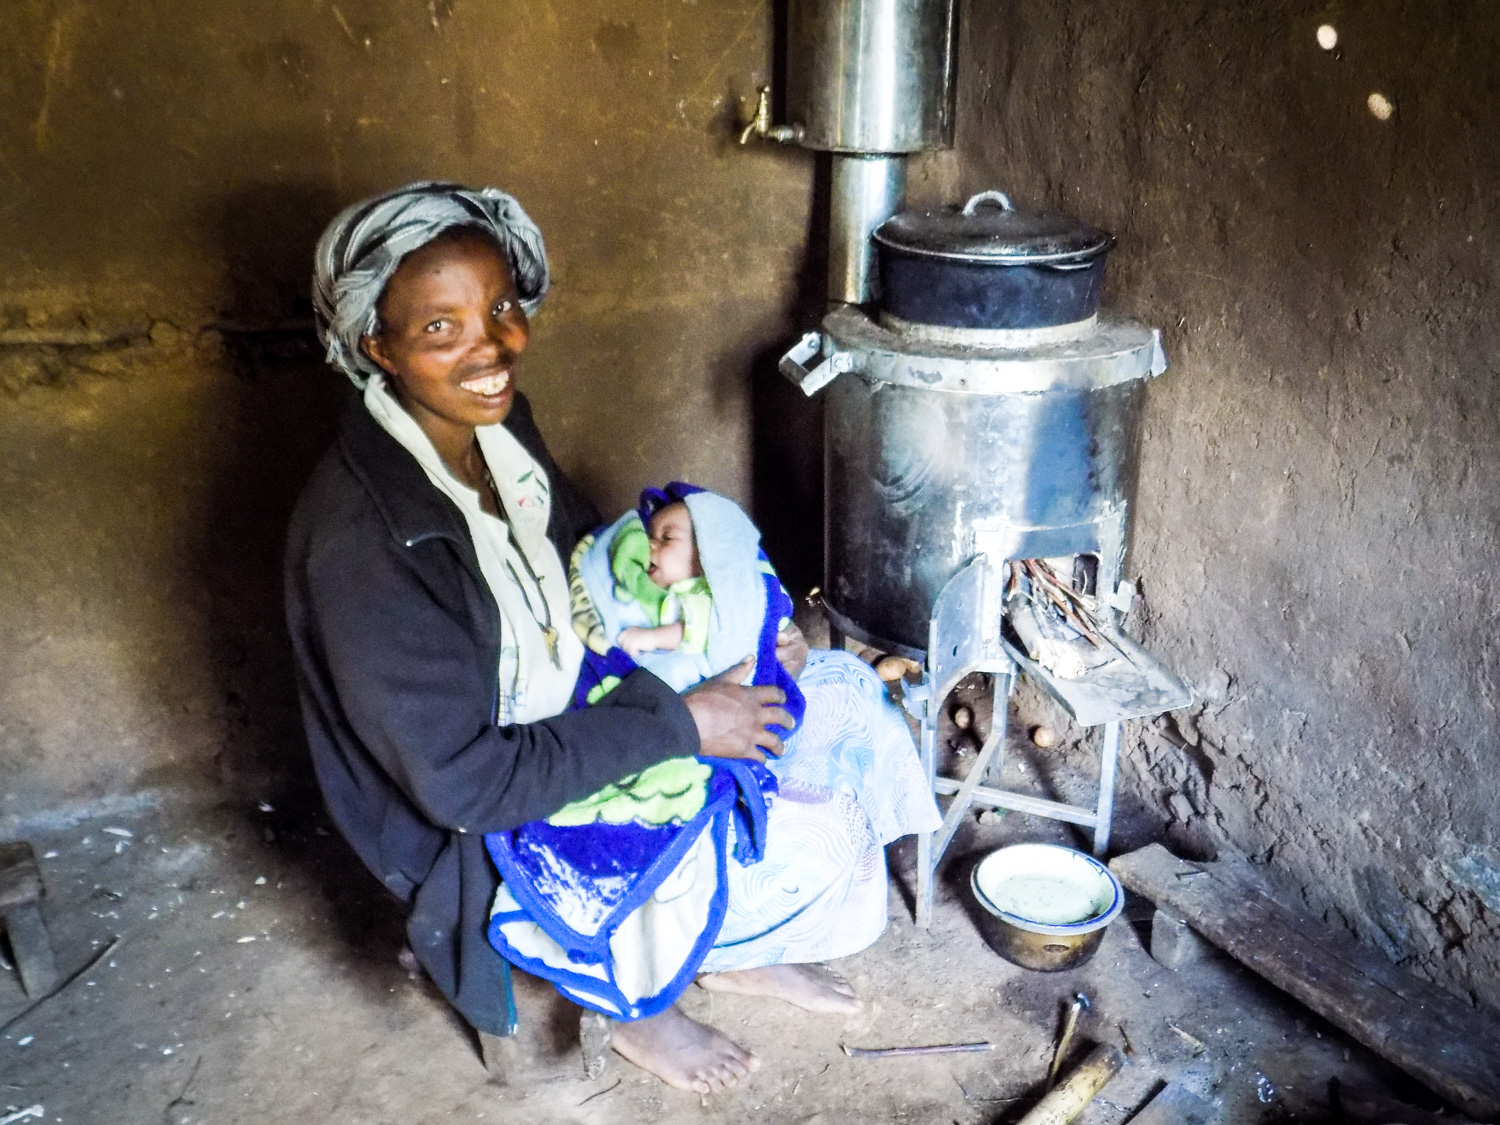 ANNE: MOTHER of ZIPPORAH - who tripped and fell into water being boiled on an open fire. | NAKURU